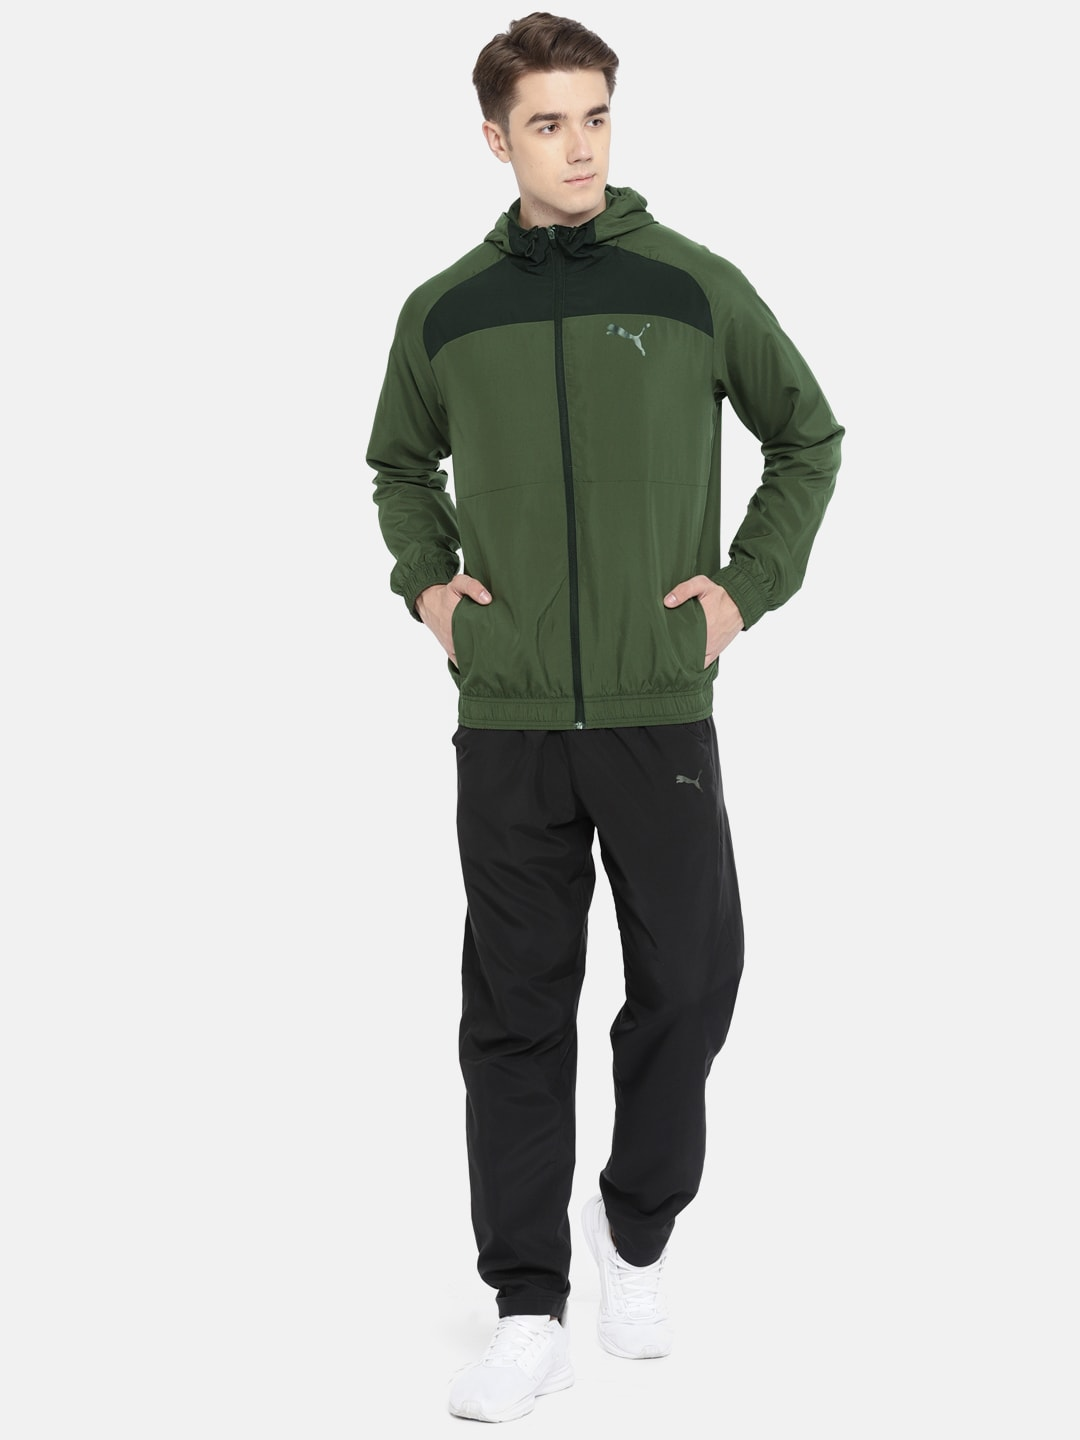 3a507c7c0c1 Tracksuits - Buy Tracksuit for Men